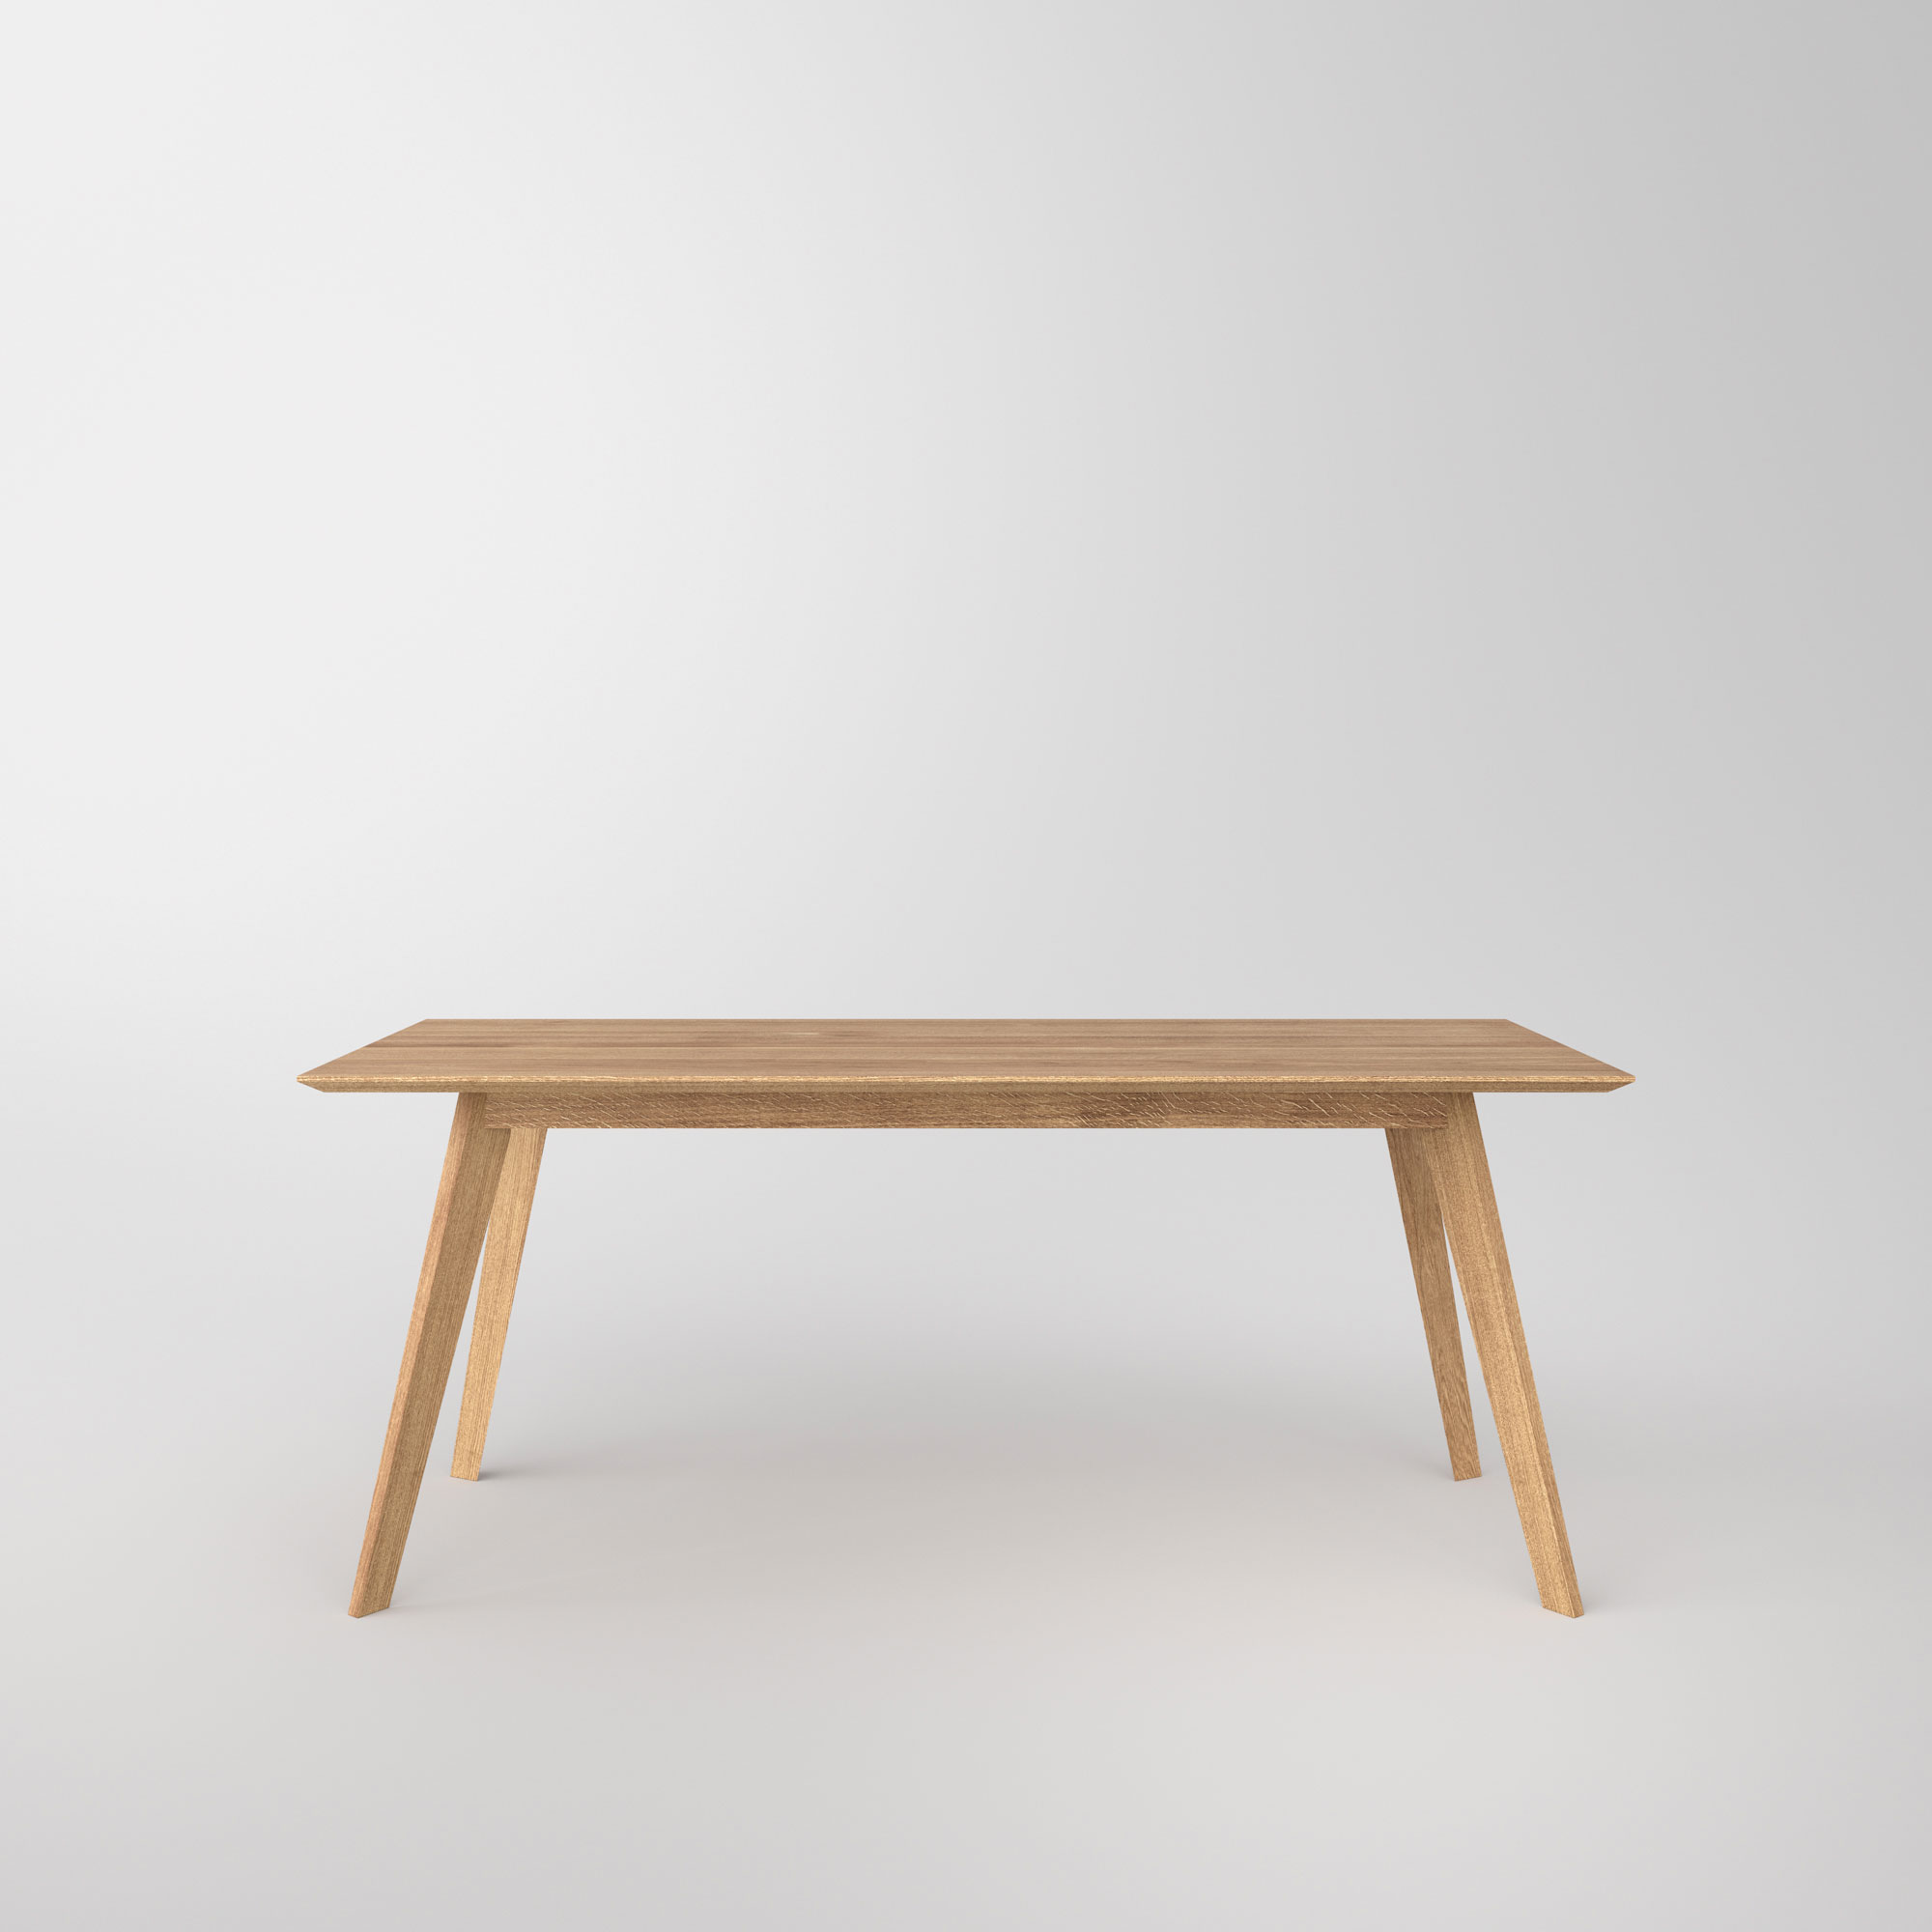 Solid Wood Dining Table CITIUS Cam3 custom made in solid wood by vitamin design